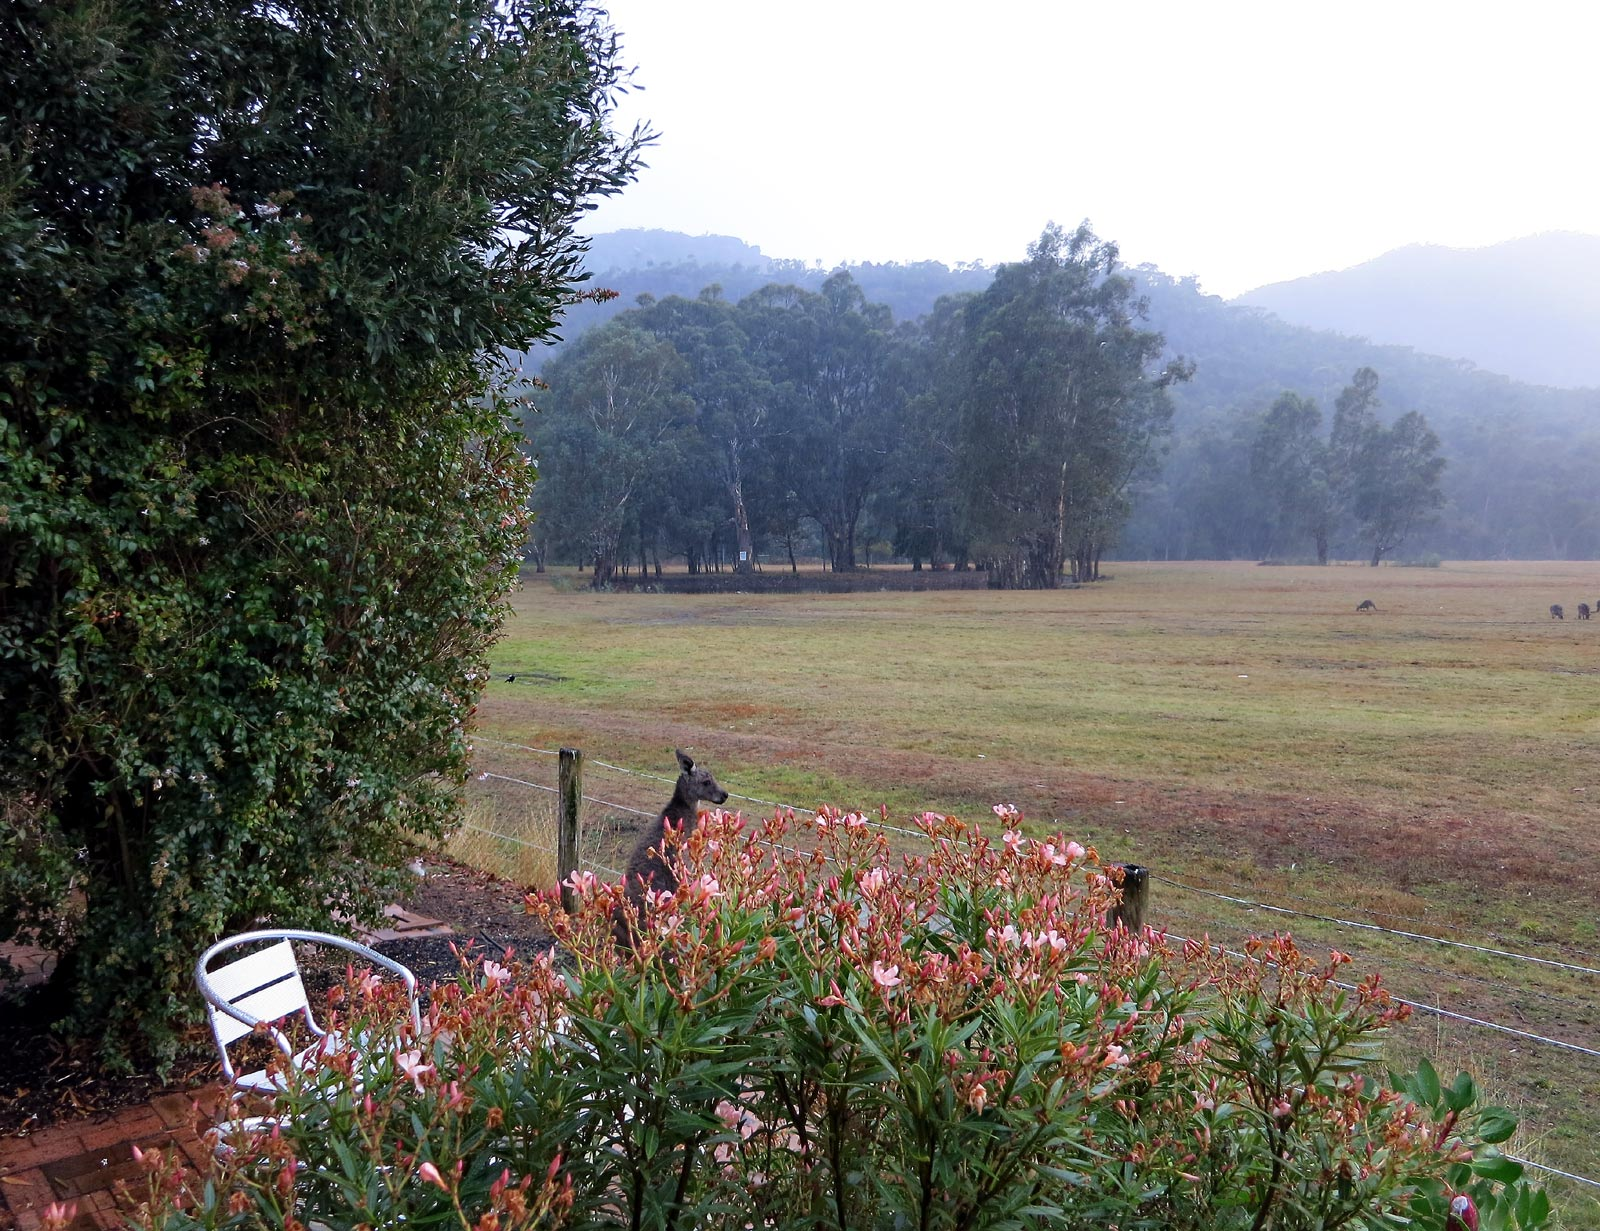 Kangaroos nearby and in distance, and rainy hills